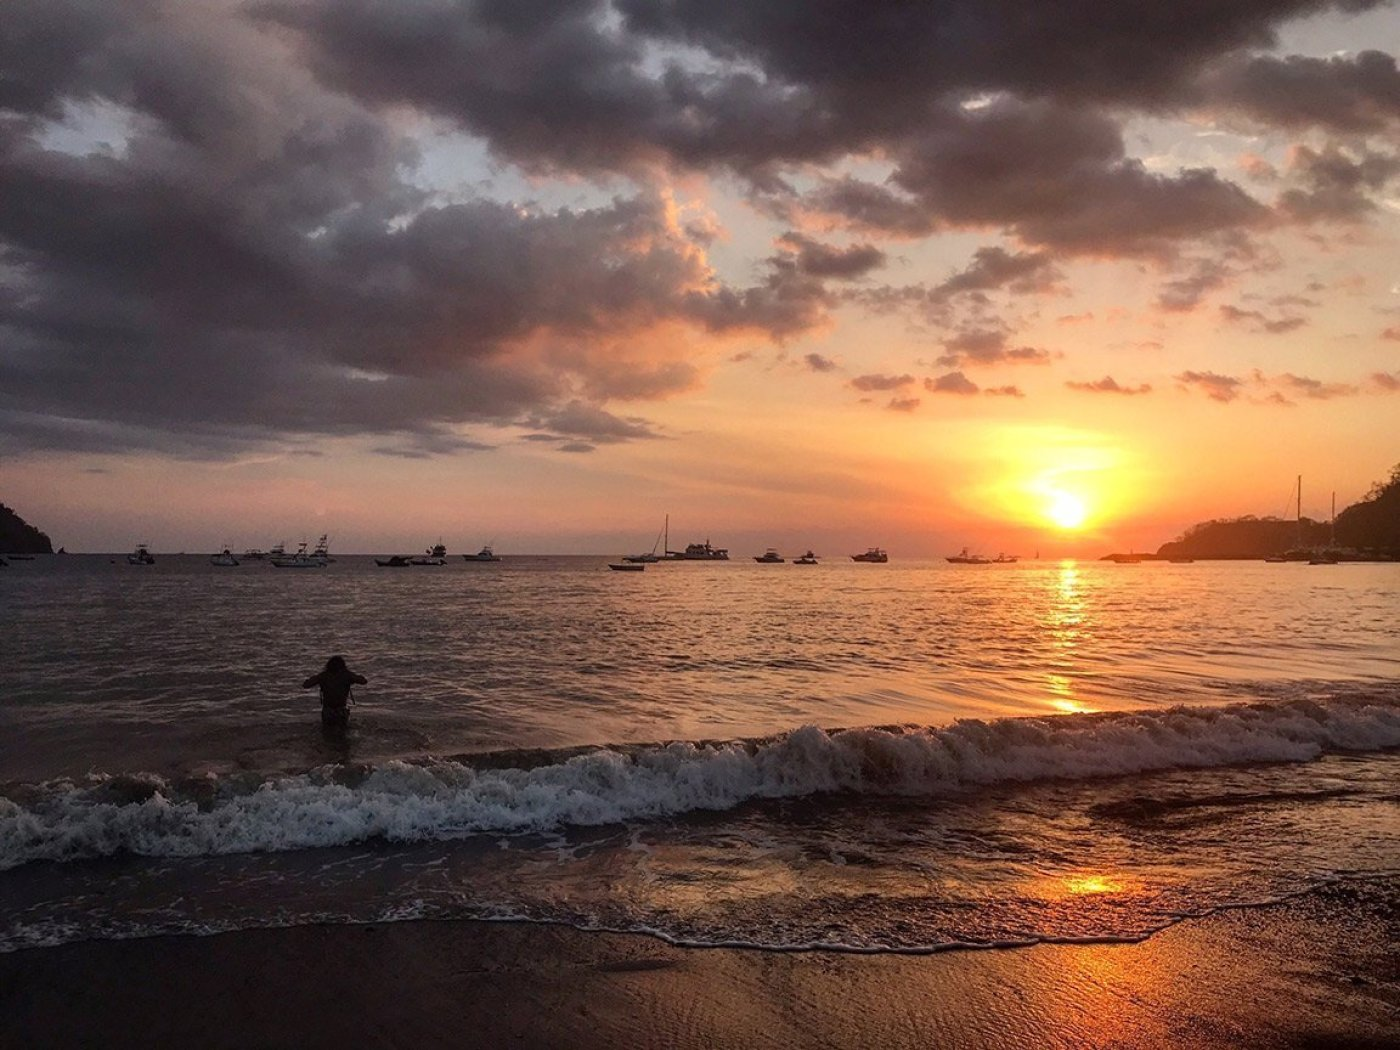 costa rican beach and sunset